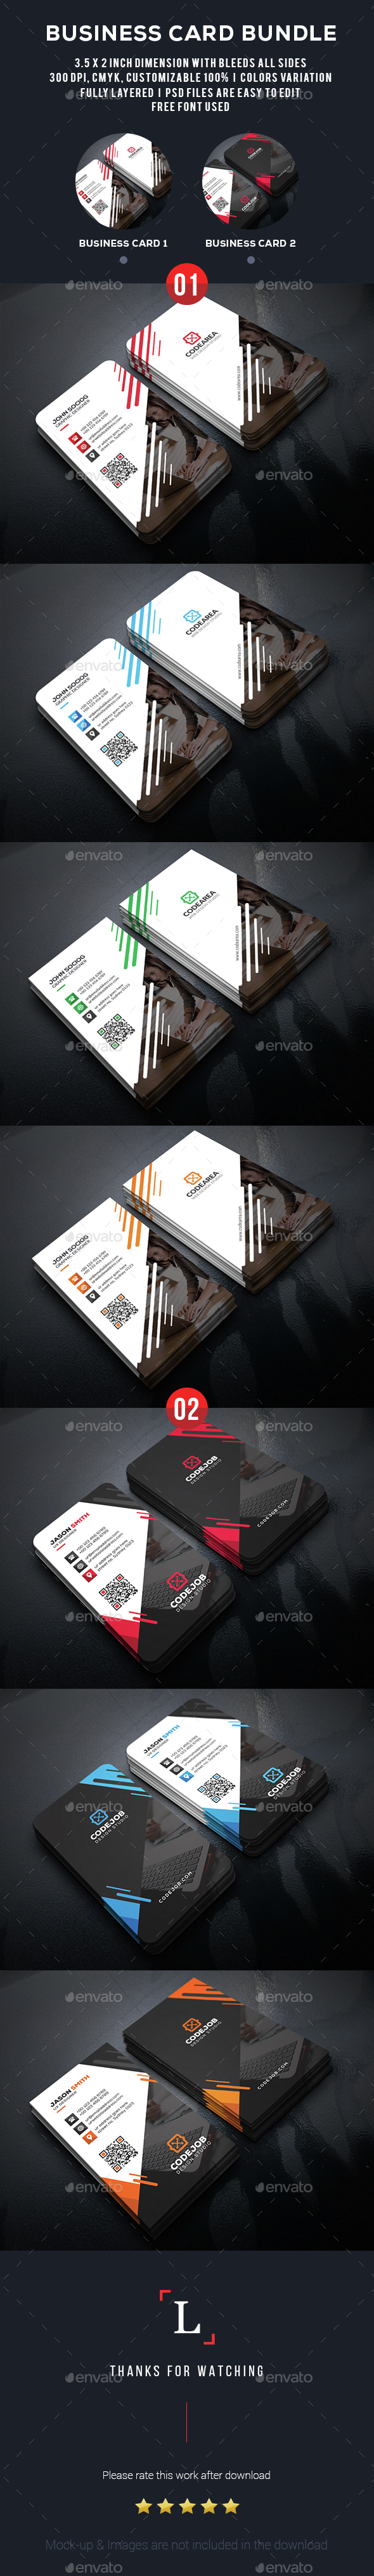 Elegant Business Card Bundle - Business Cards Print Templates